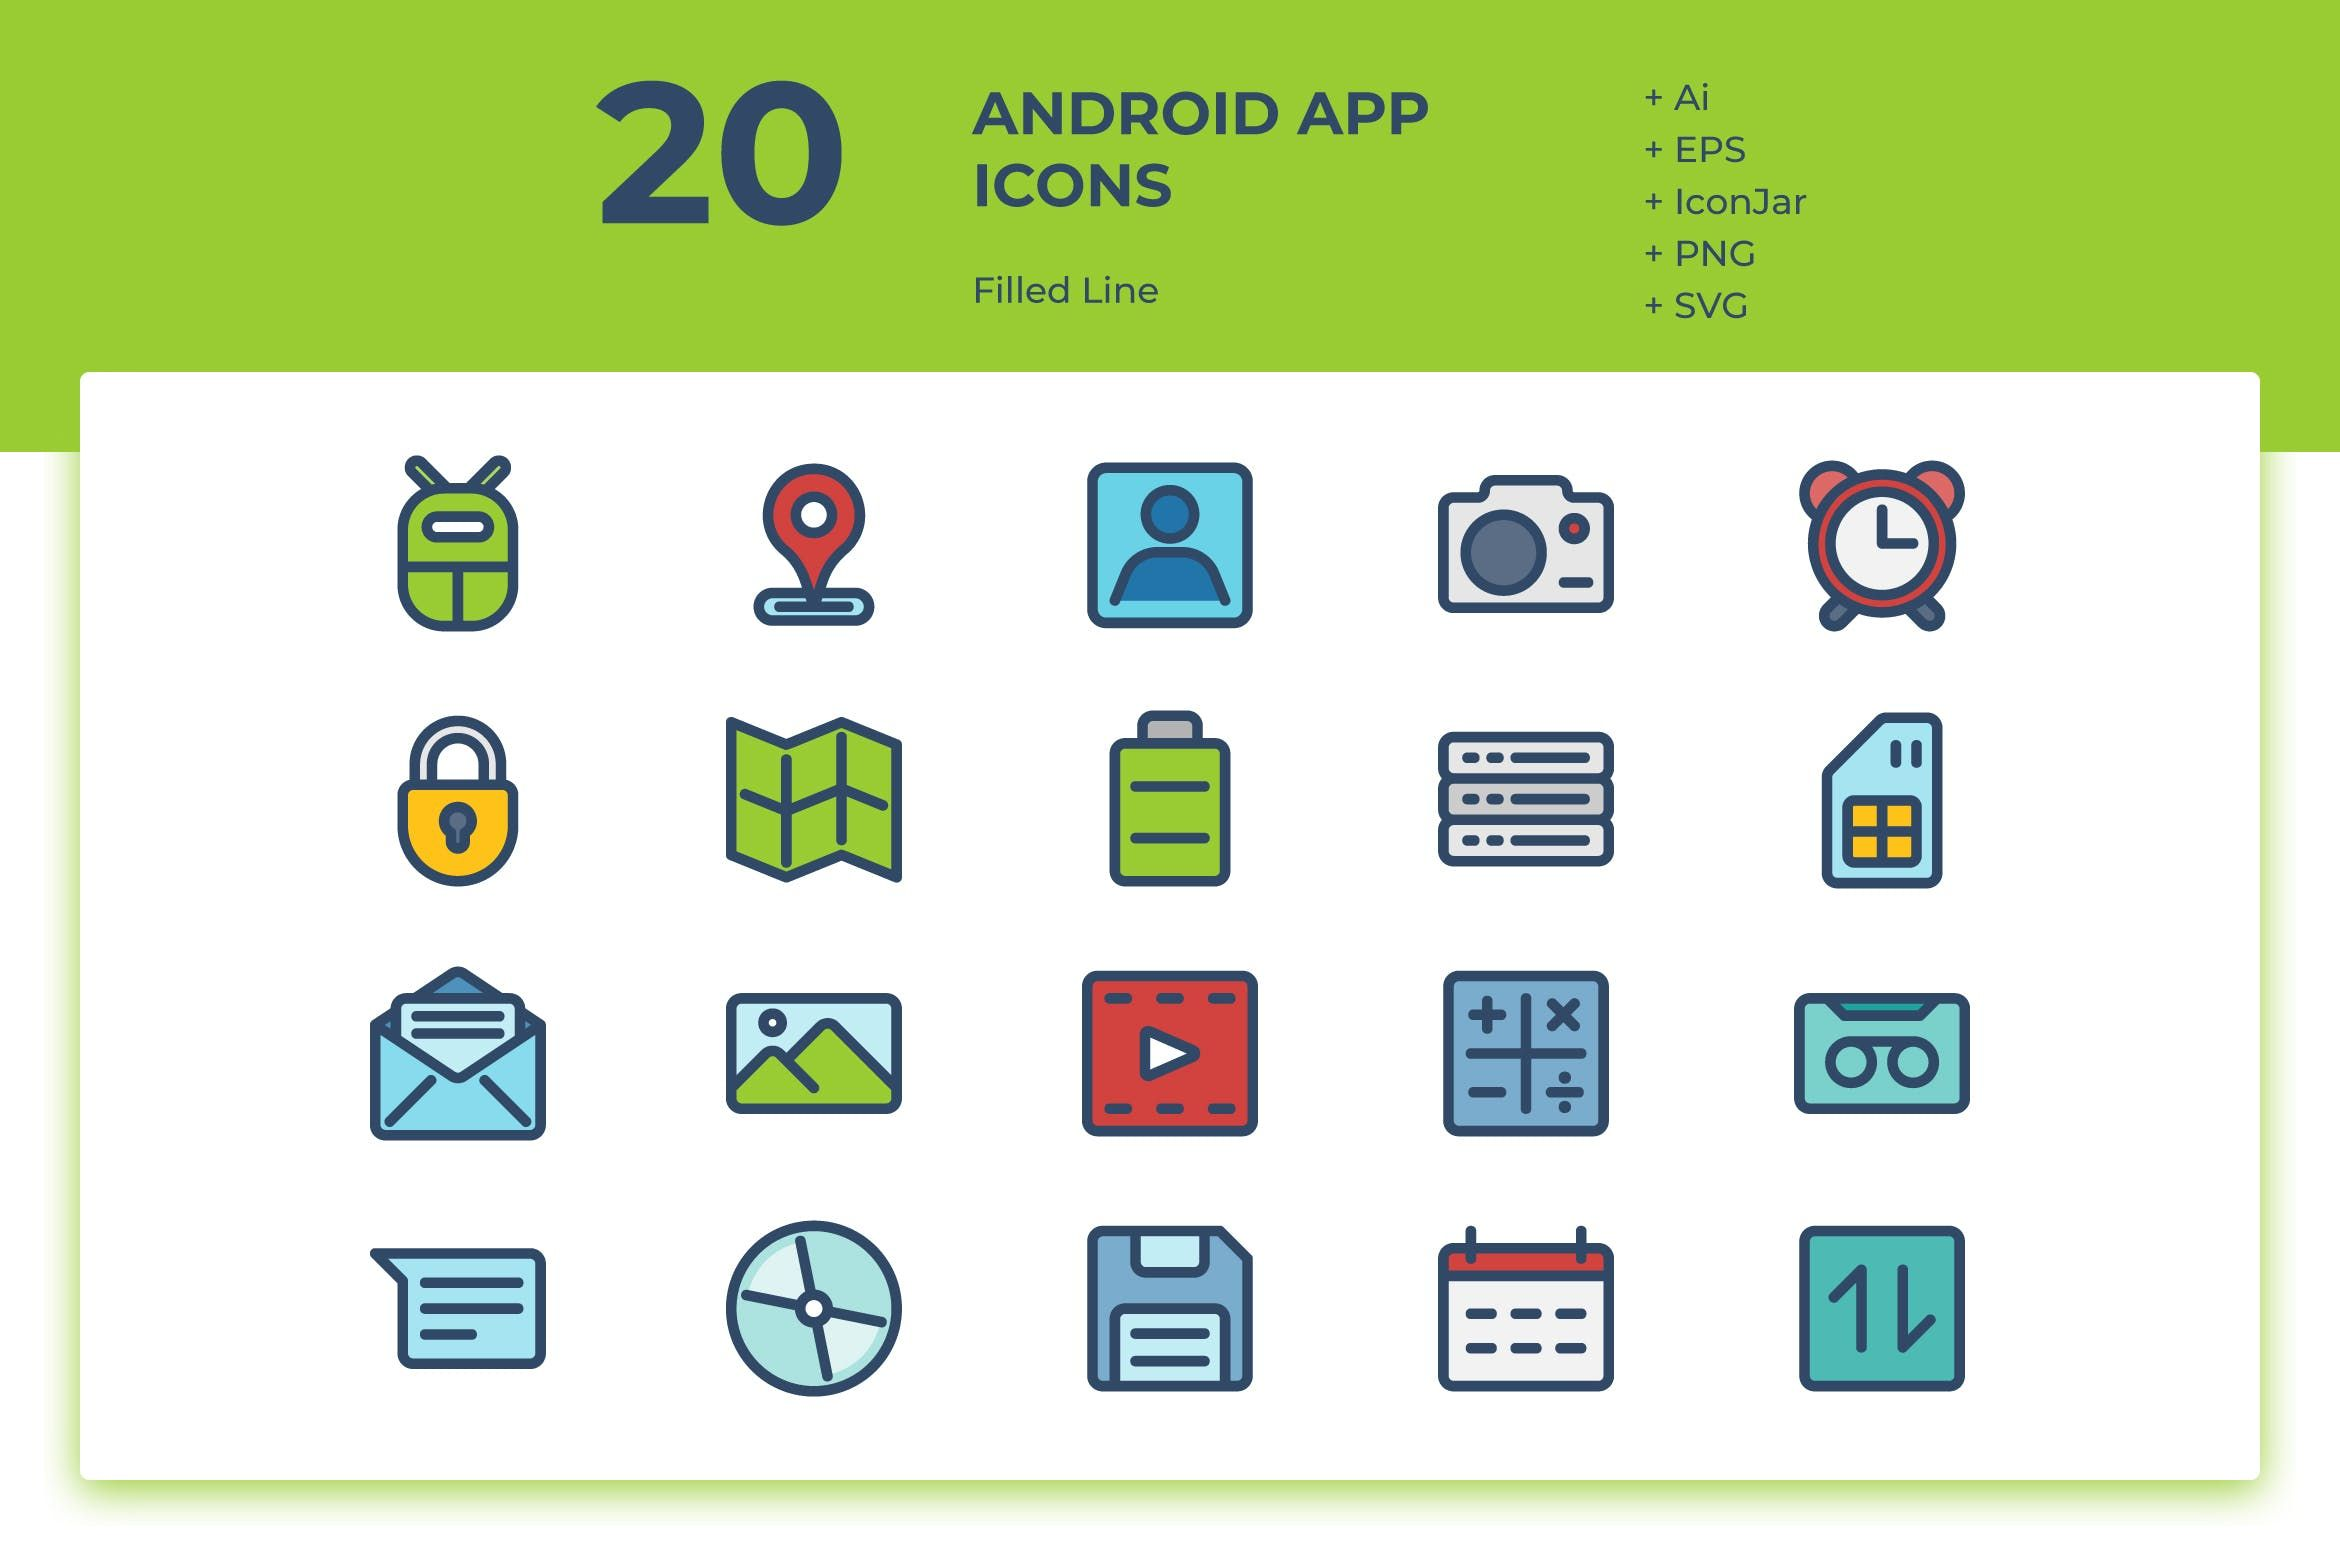 20 Android App Icons (Filled Line) by inipagi on Android